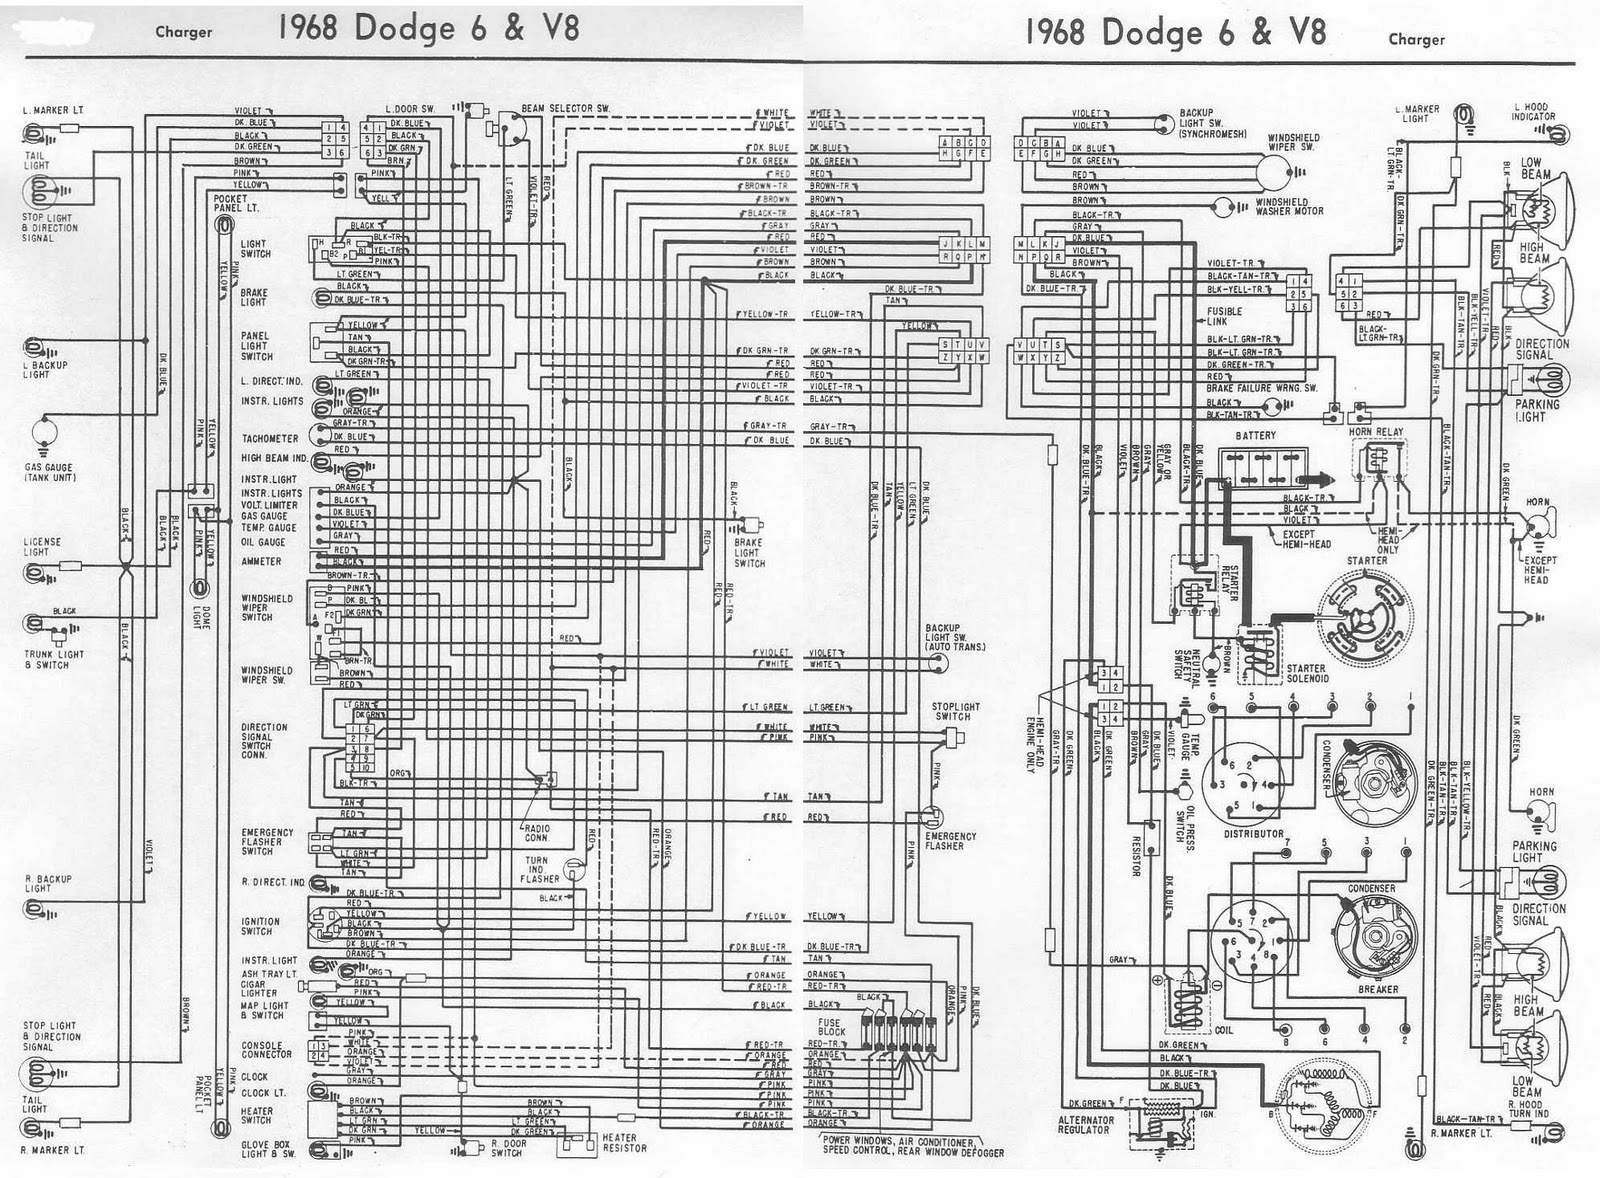 Dodge+Charger+1968+6+and+V8+Complete+Electrical+Wiring+Diagram dodge charger 1968 6 and v8 complete electrical wiring diagram 1968 camaro ac wiring diagram at webbmarketing.co